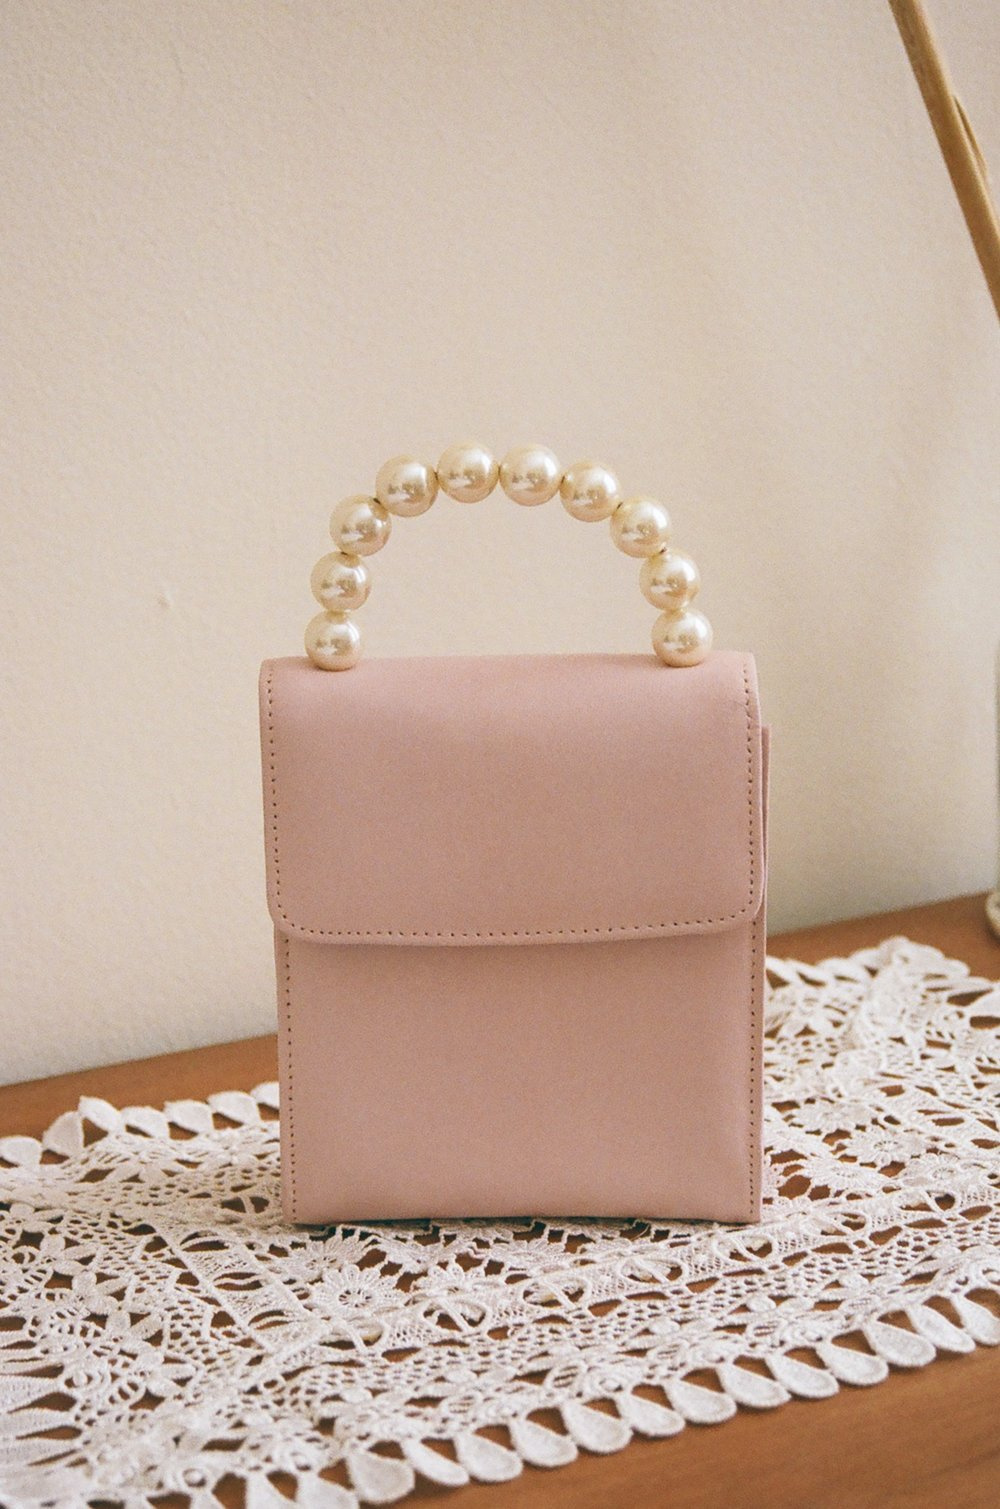 pearl handle purse 3.jpg